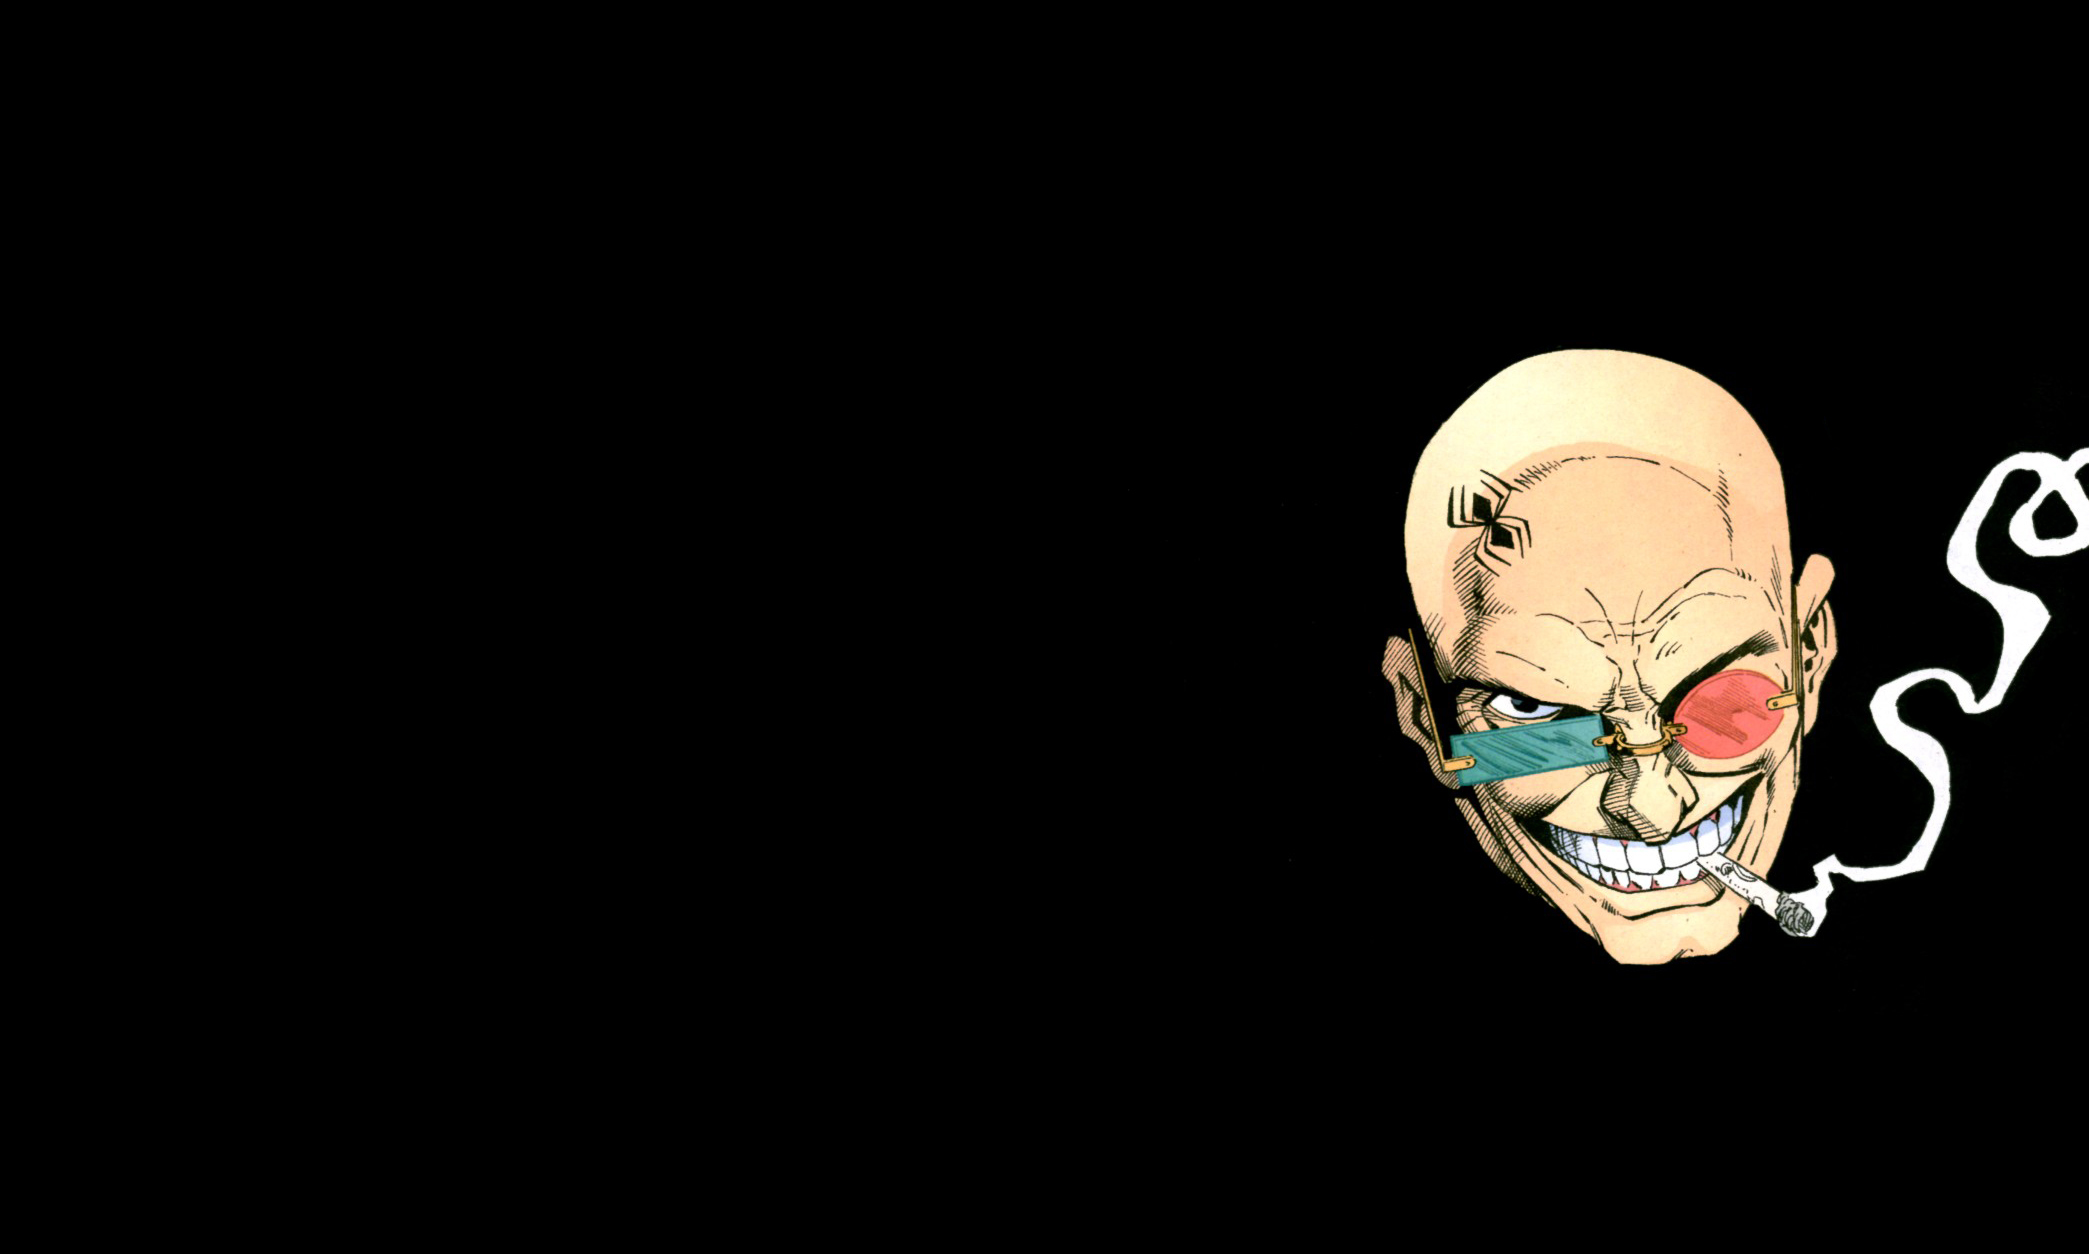 smoking Men transmetropolitan villains HD Wallpaper